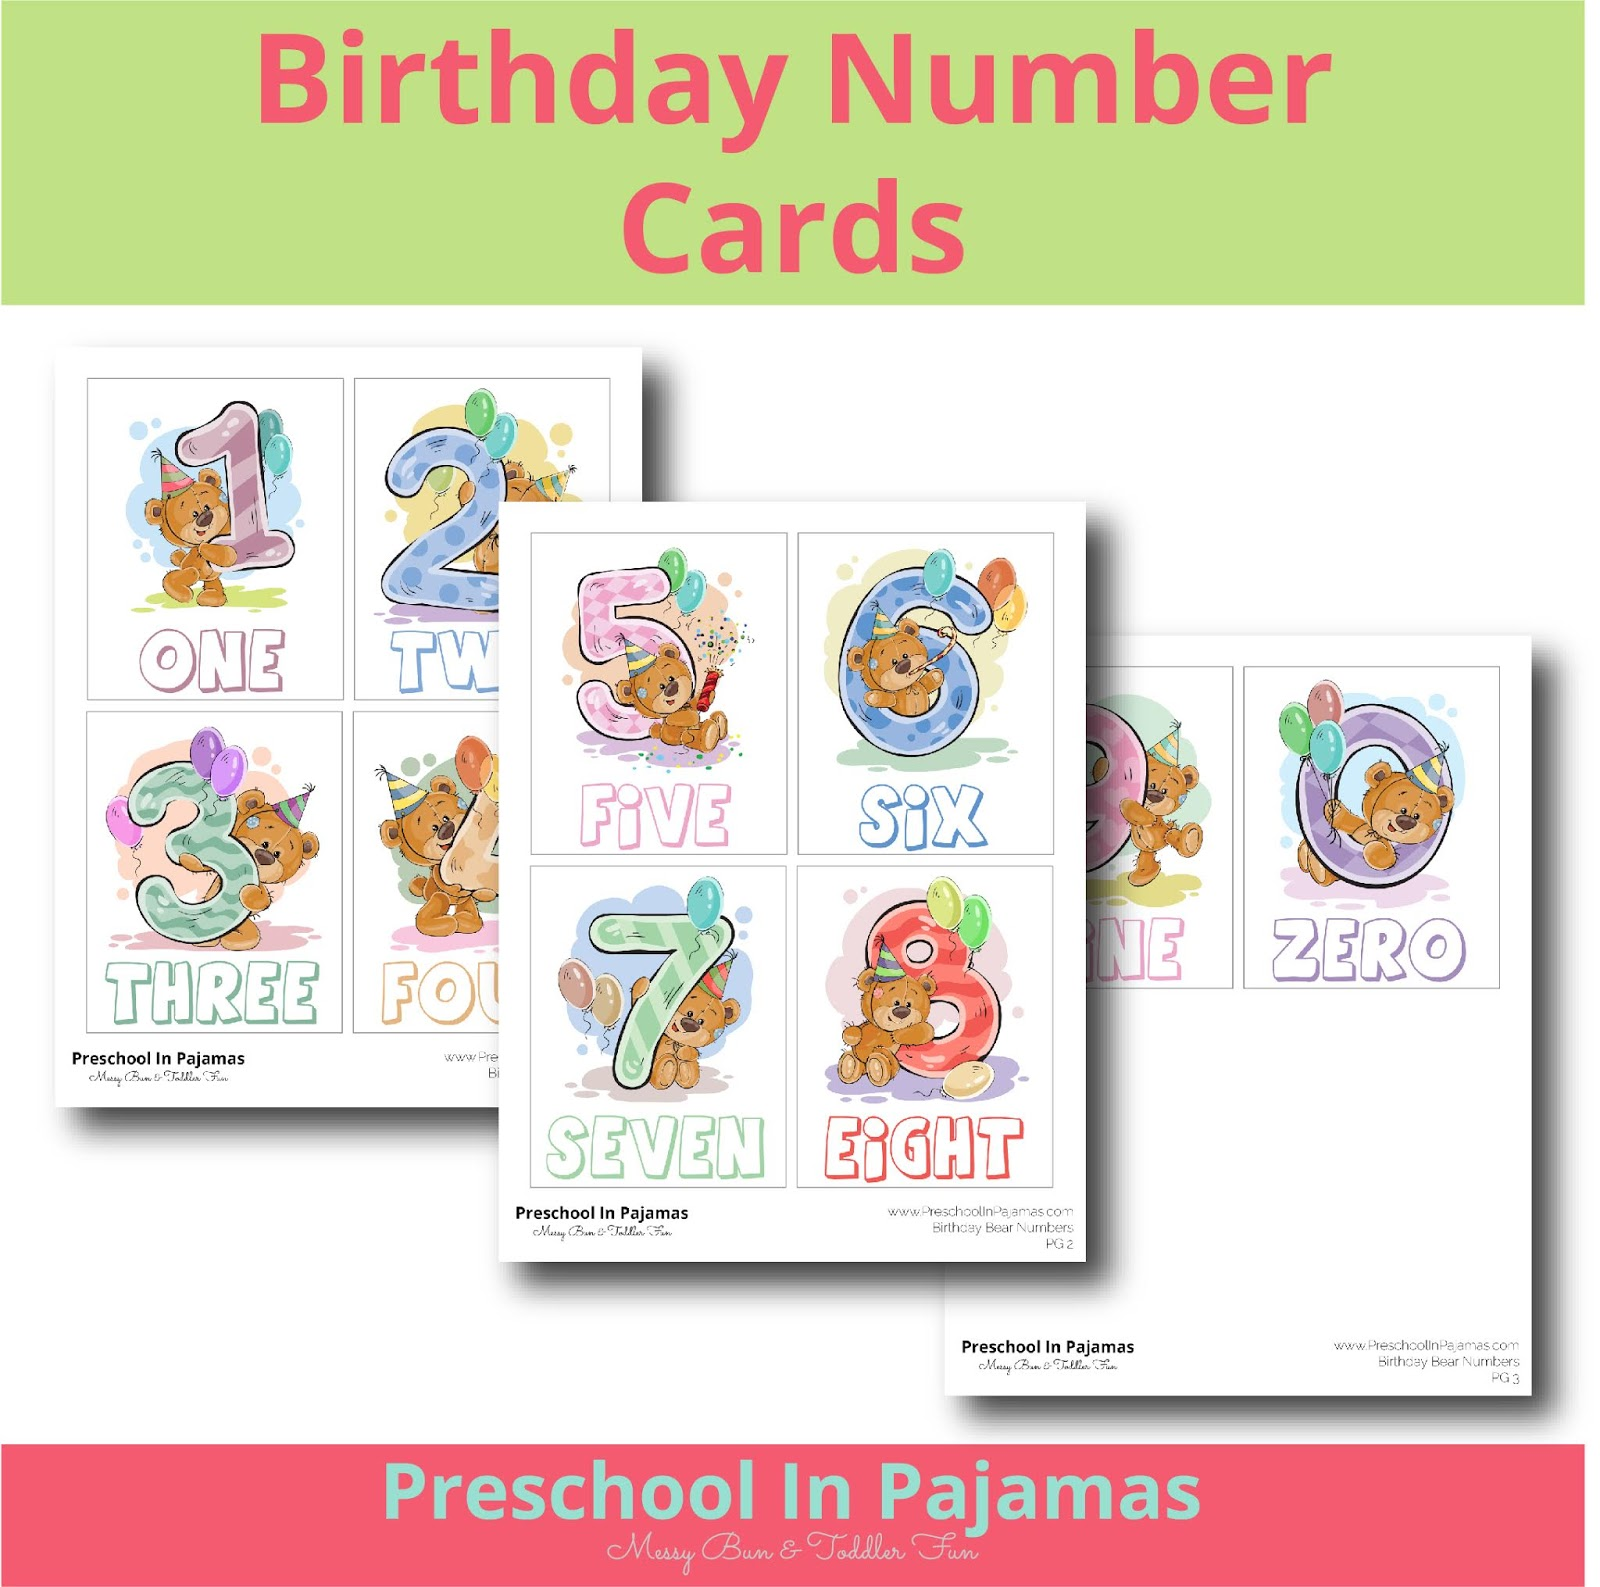 Free Birthday Number Cards Printable